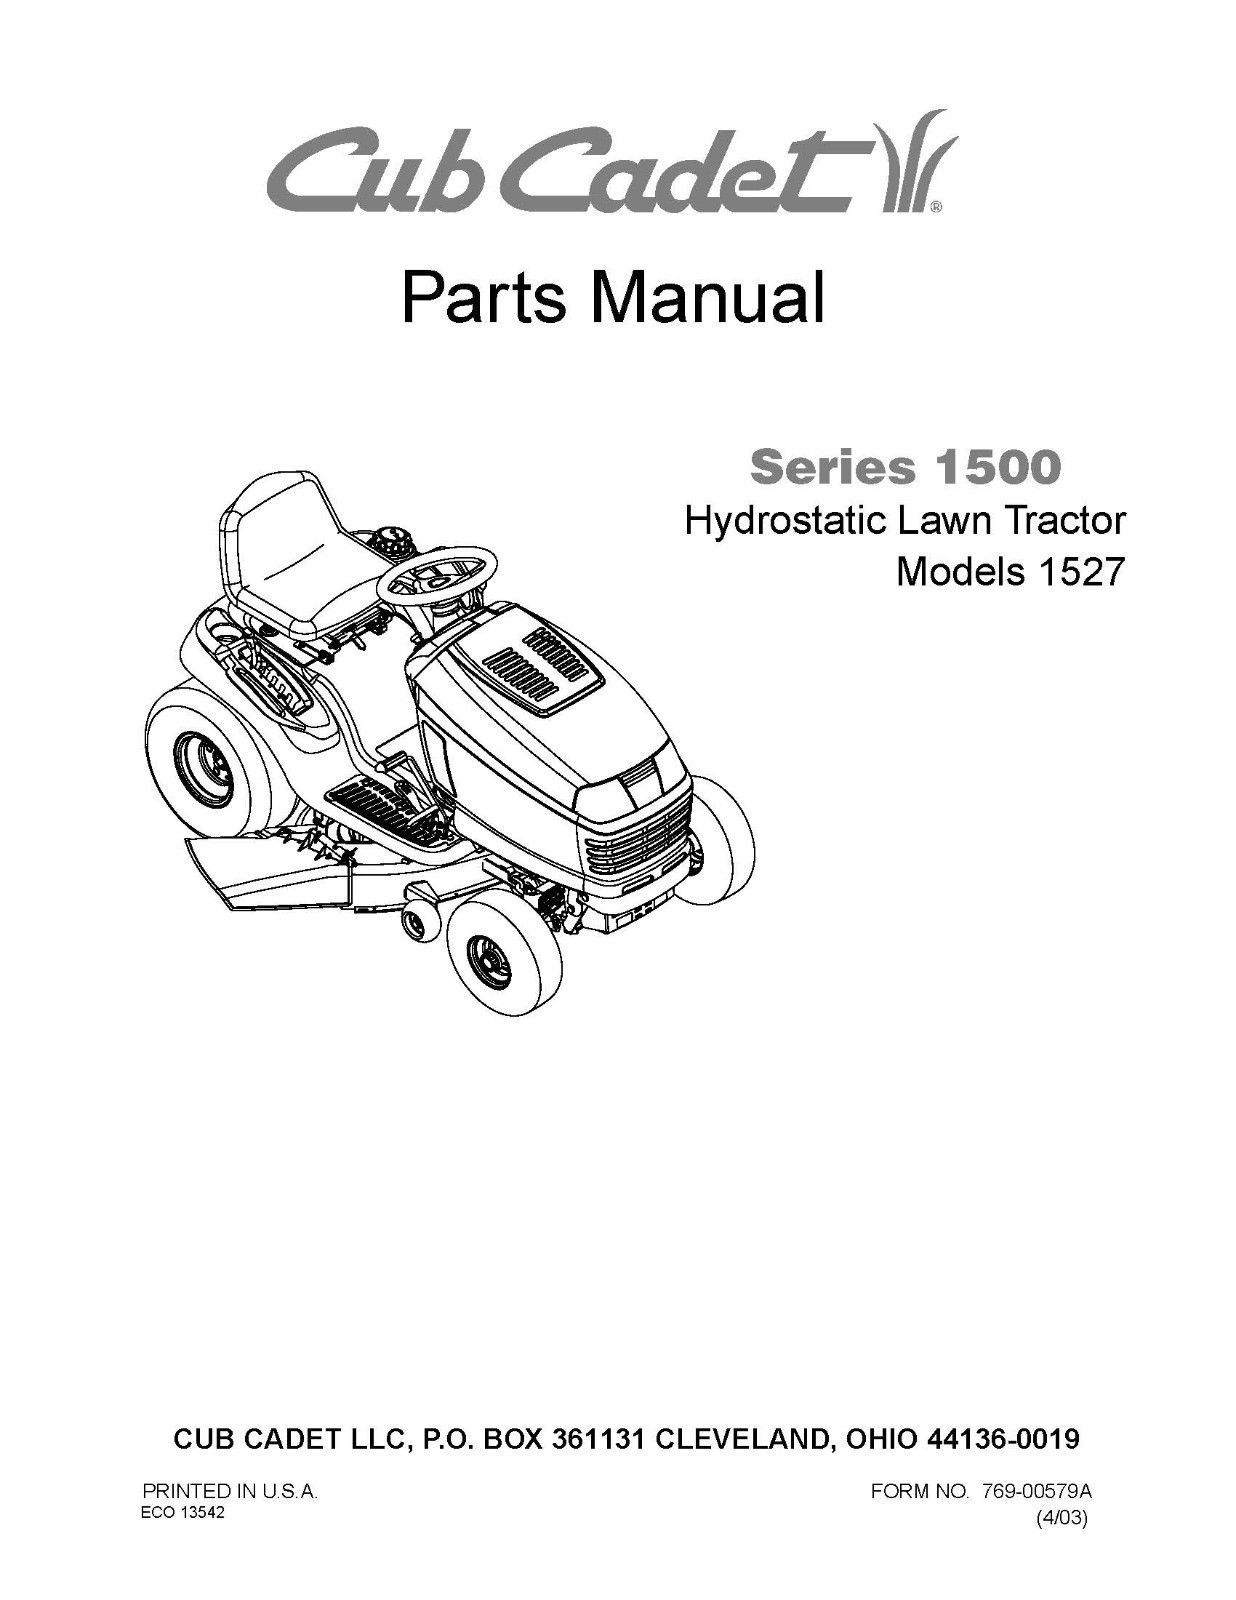 Cub Cadet 1500 Series Hydrostatic Lawn Tractor Parts Manual Model No. 1527